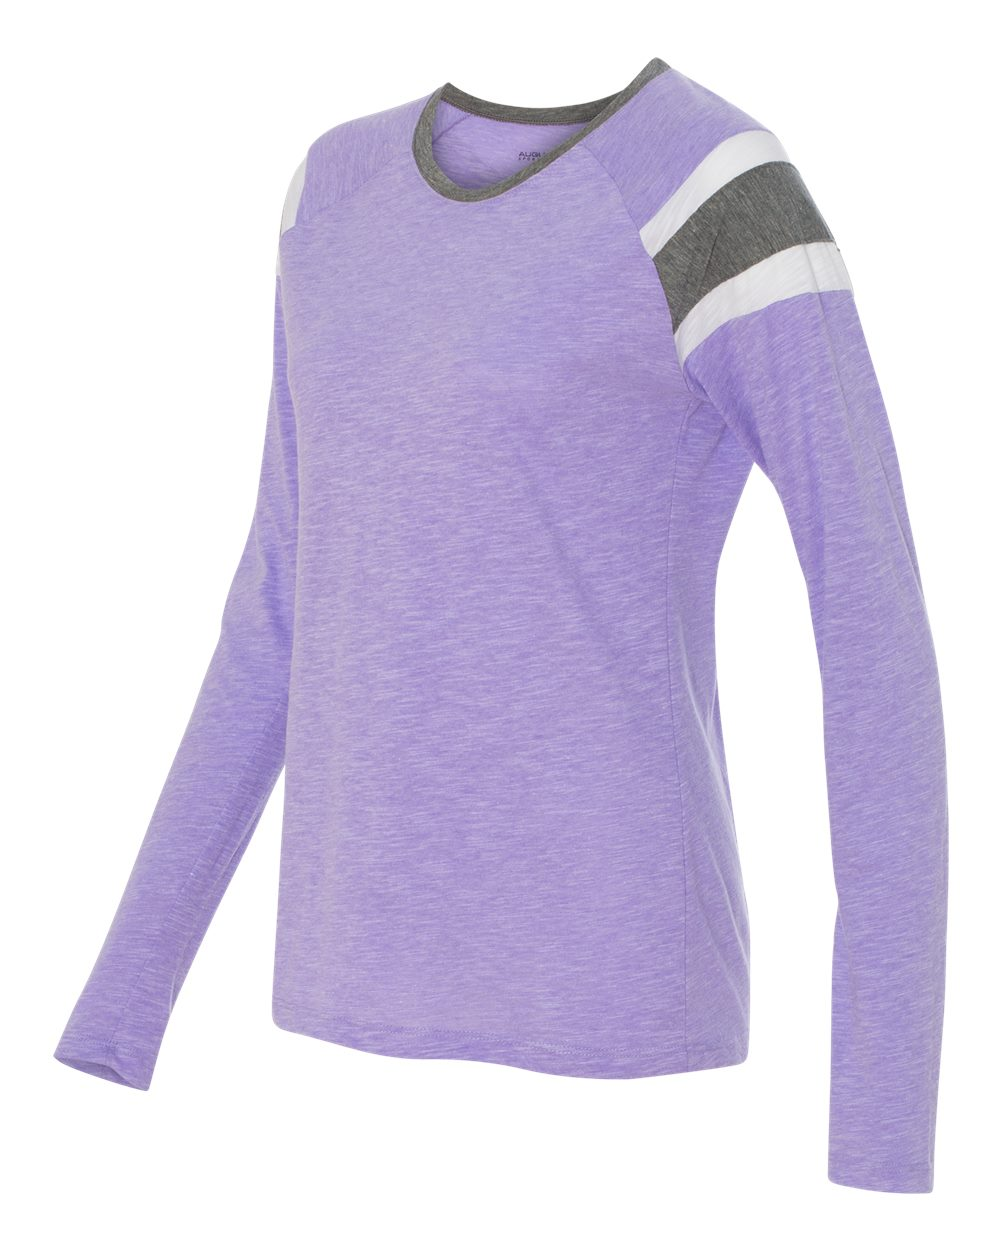 Augusta Sportswear 3012 - Women's Long Sleeve Fanatic ...